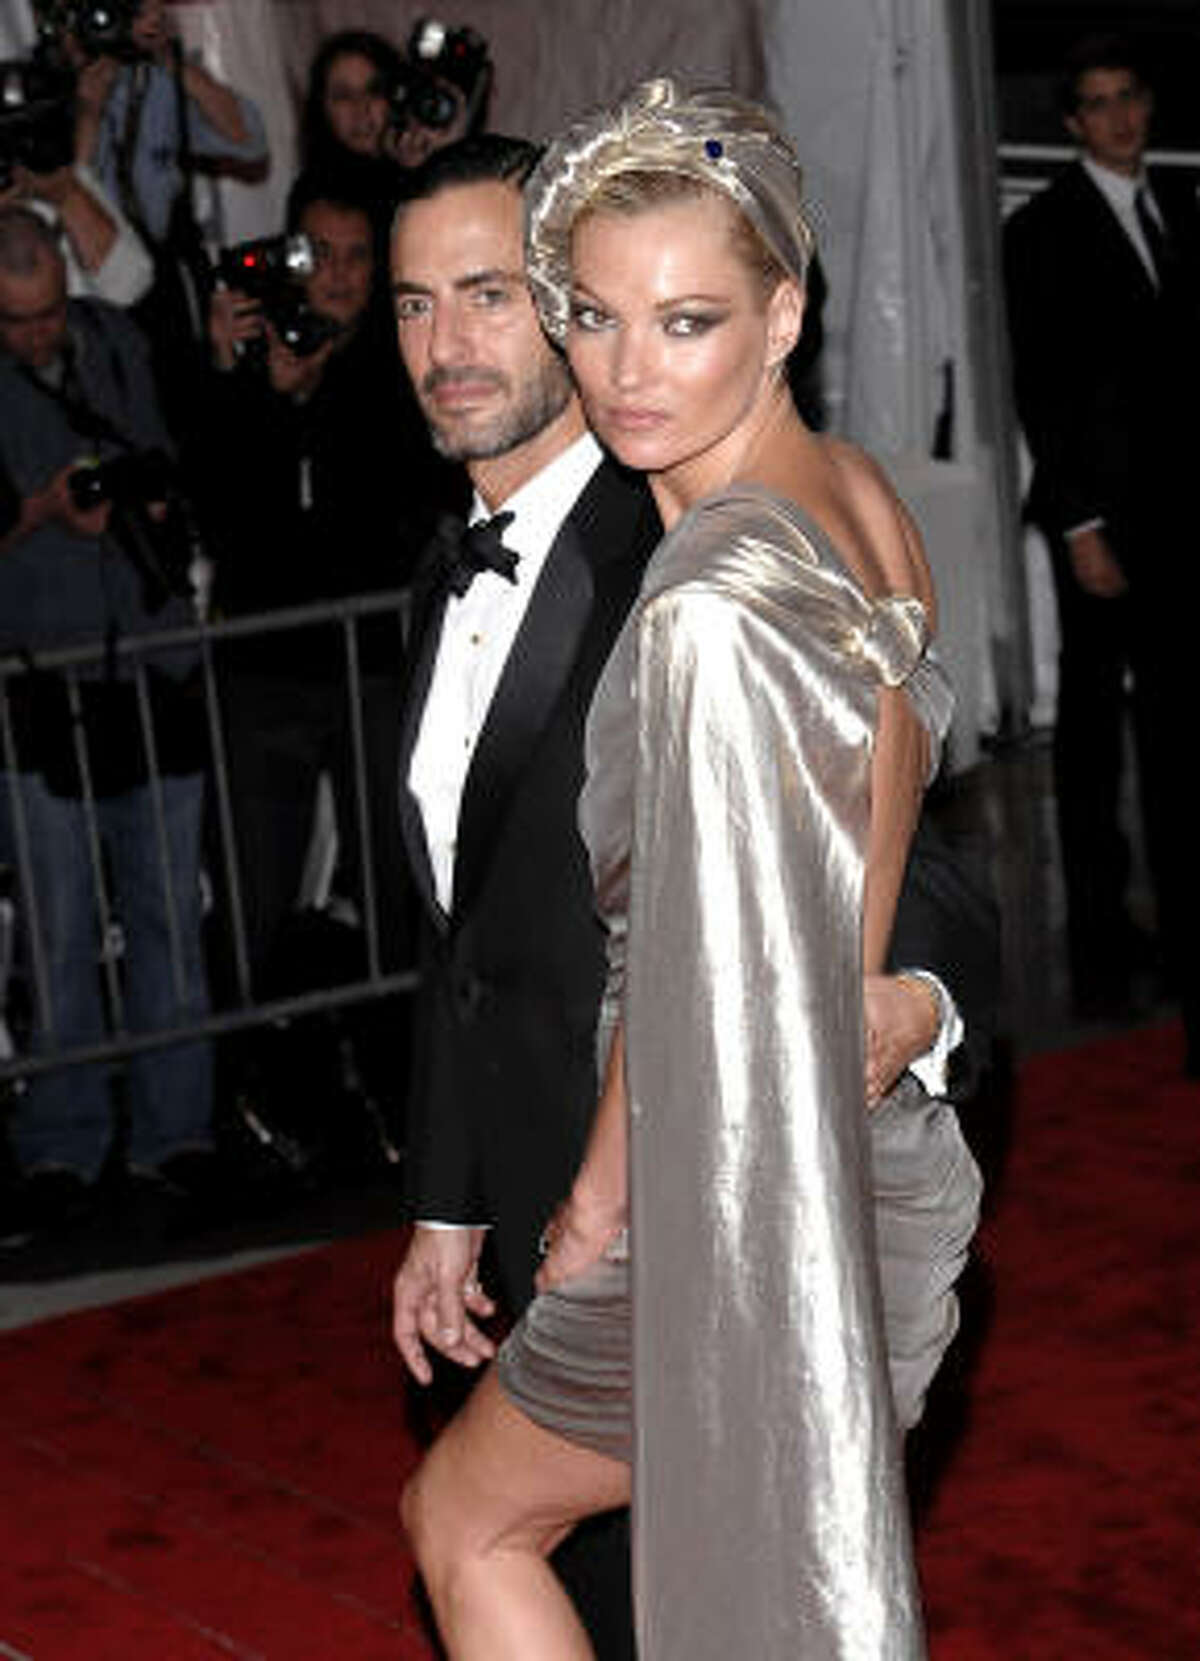 Fashion designer Marc Jacobs and Kate Moss